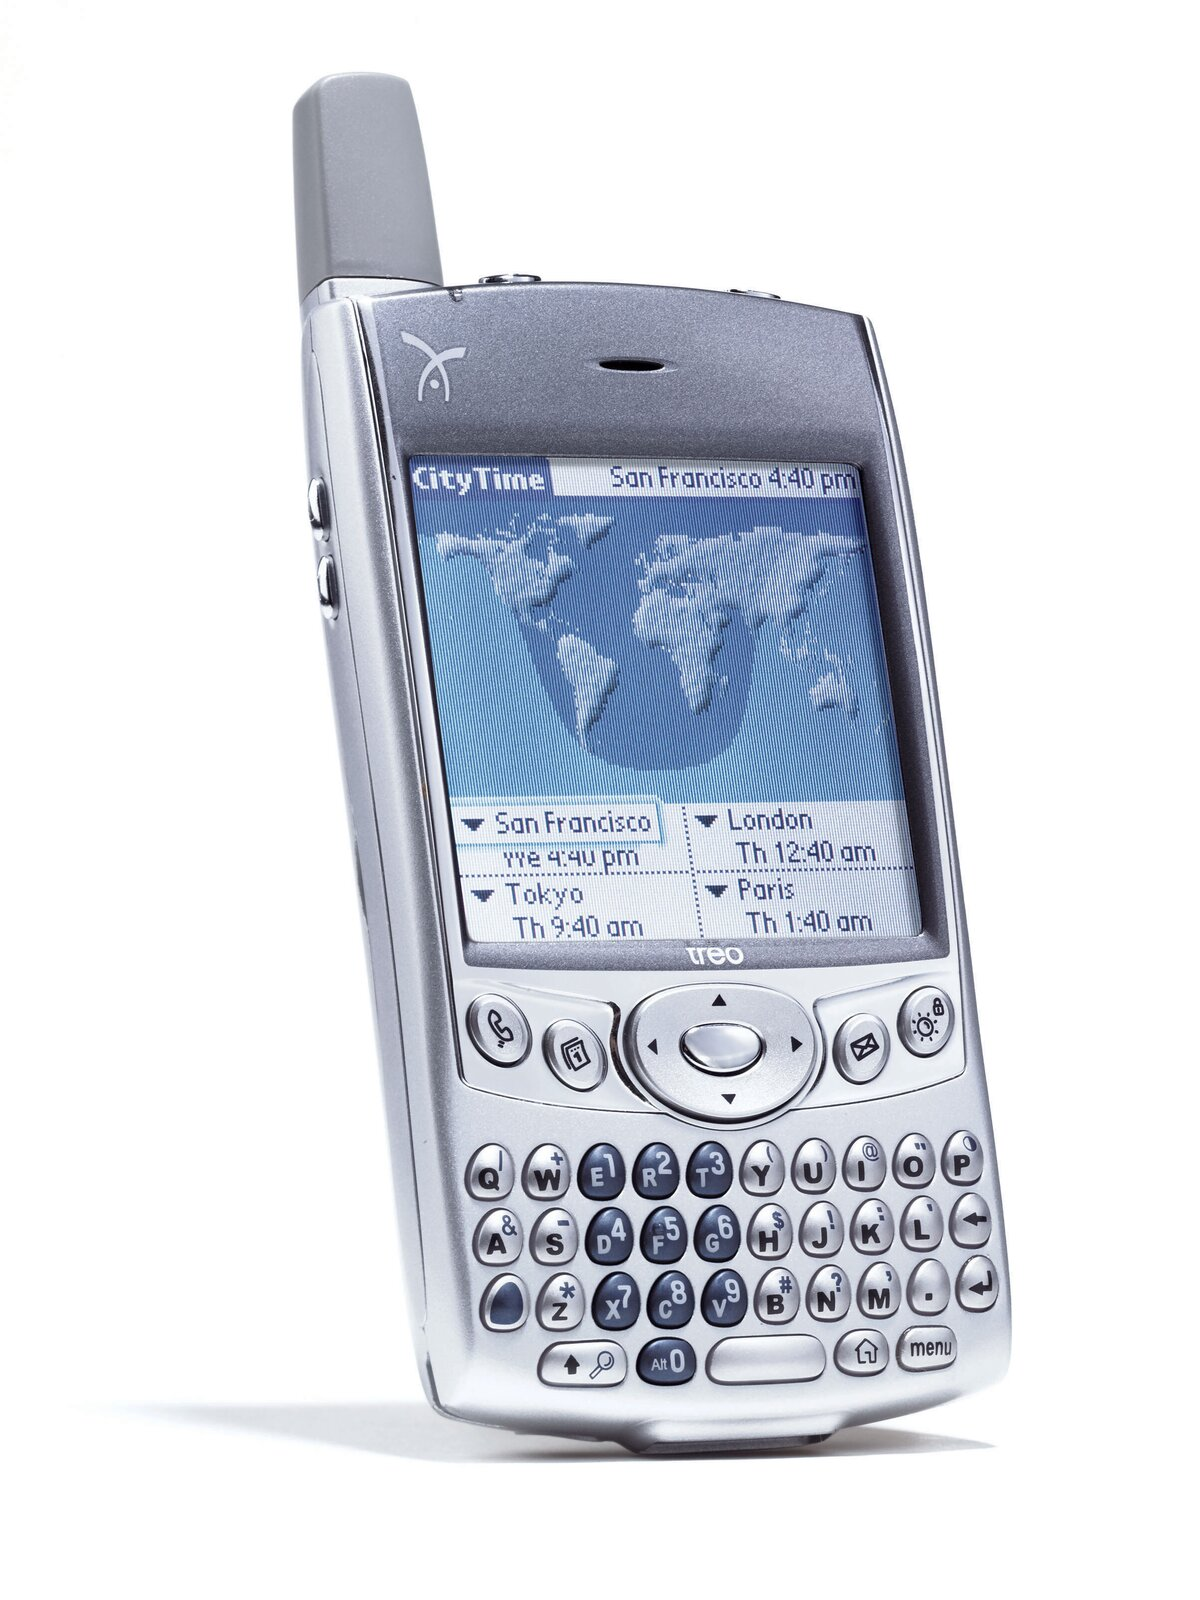 Includes speakerphone option, organizer, built-in camera, backlit keyboard, five-way navigation button, wireless We and email. Operates on Palm OS 5.2.1. 6.2 ounces, 4.4 x 2.4 x 0.9 inches.  Photo 2 of 6 in Inspecting Gadgets